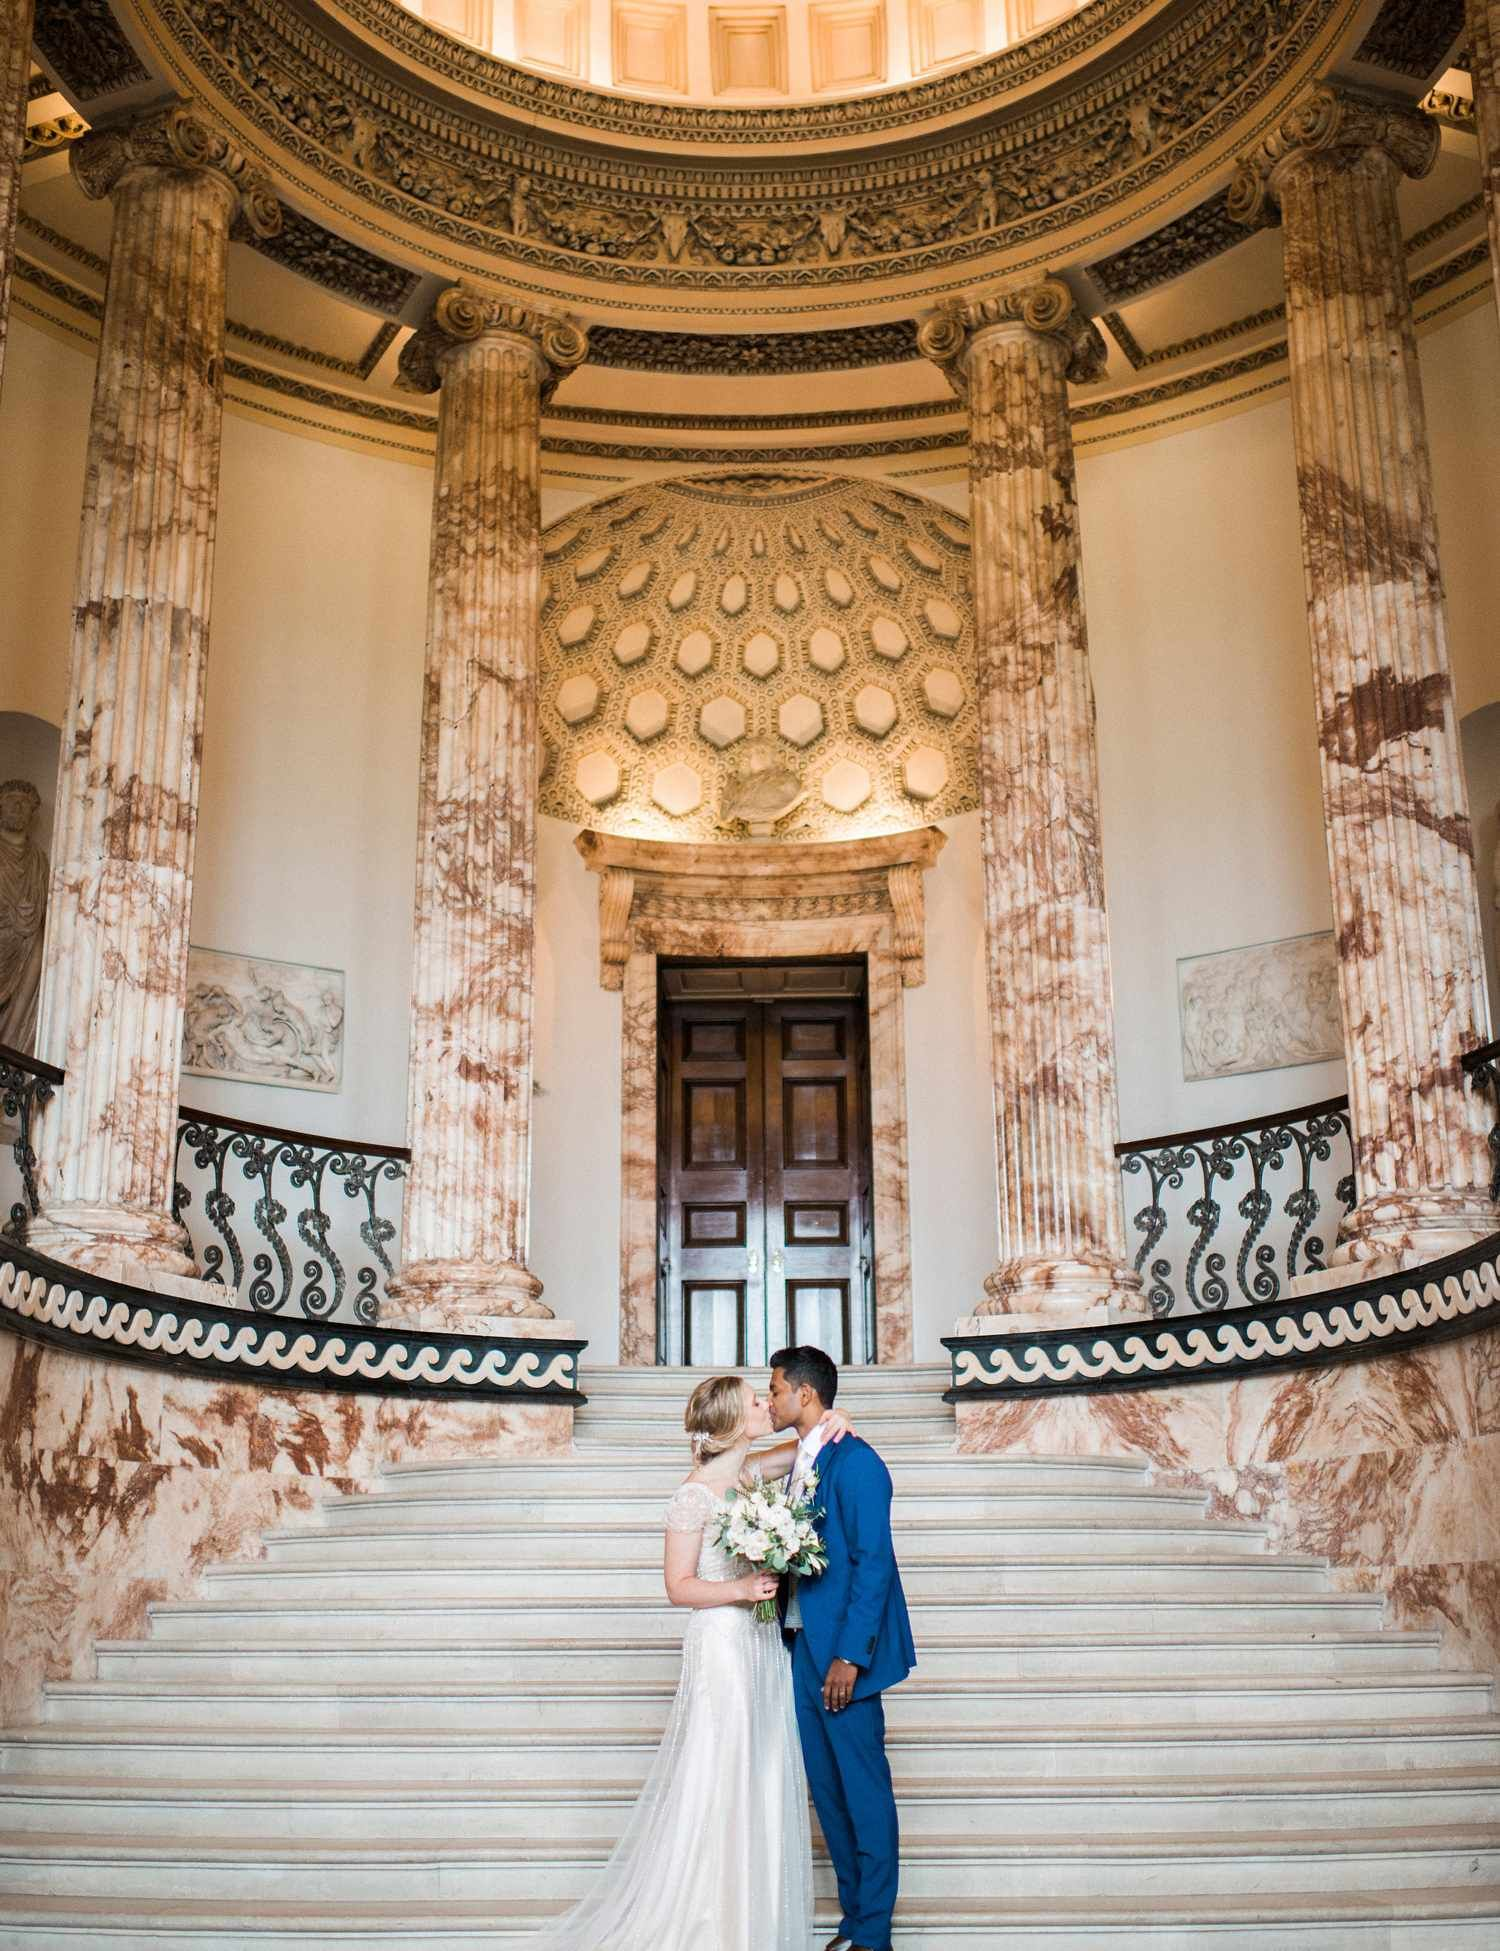 Real Wedding: An elegant day at Holkham Hall with a Maggie Sottero wedding dress